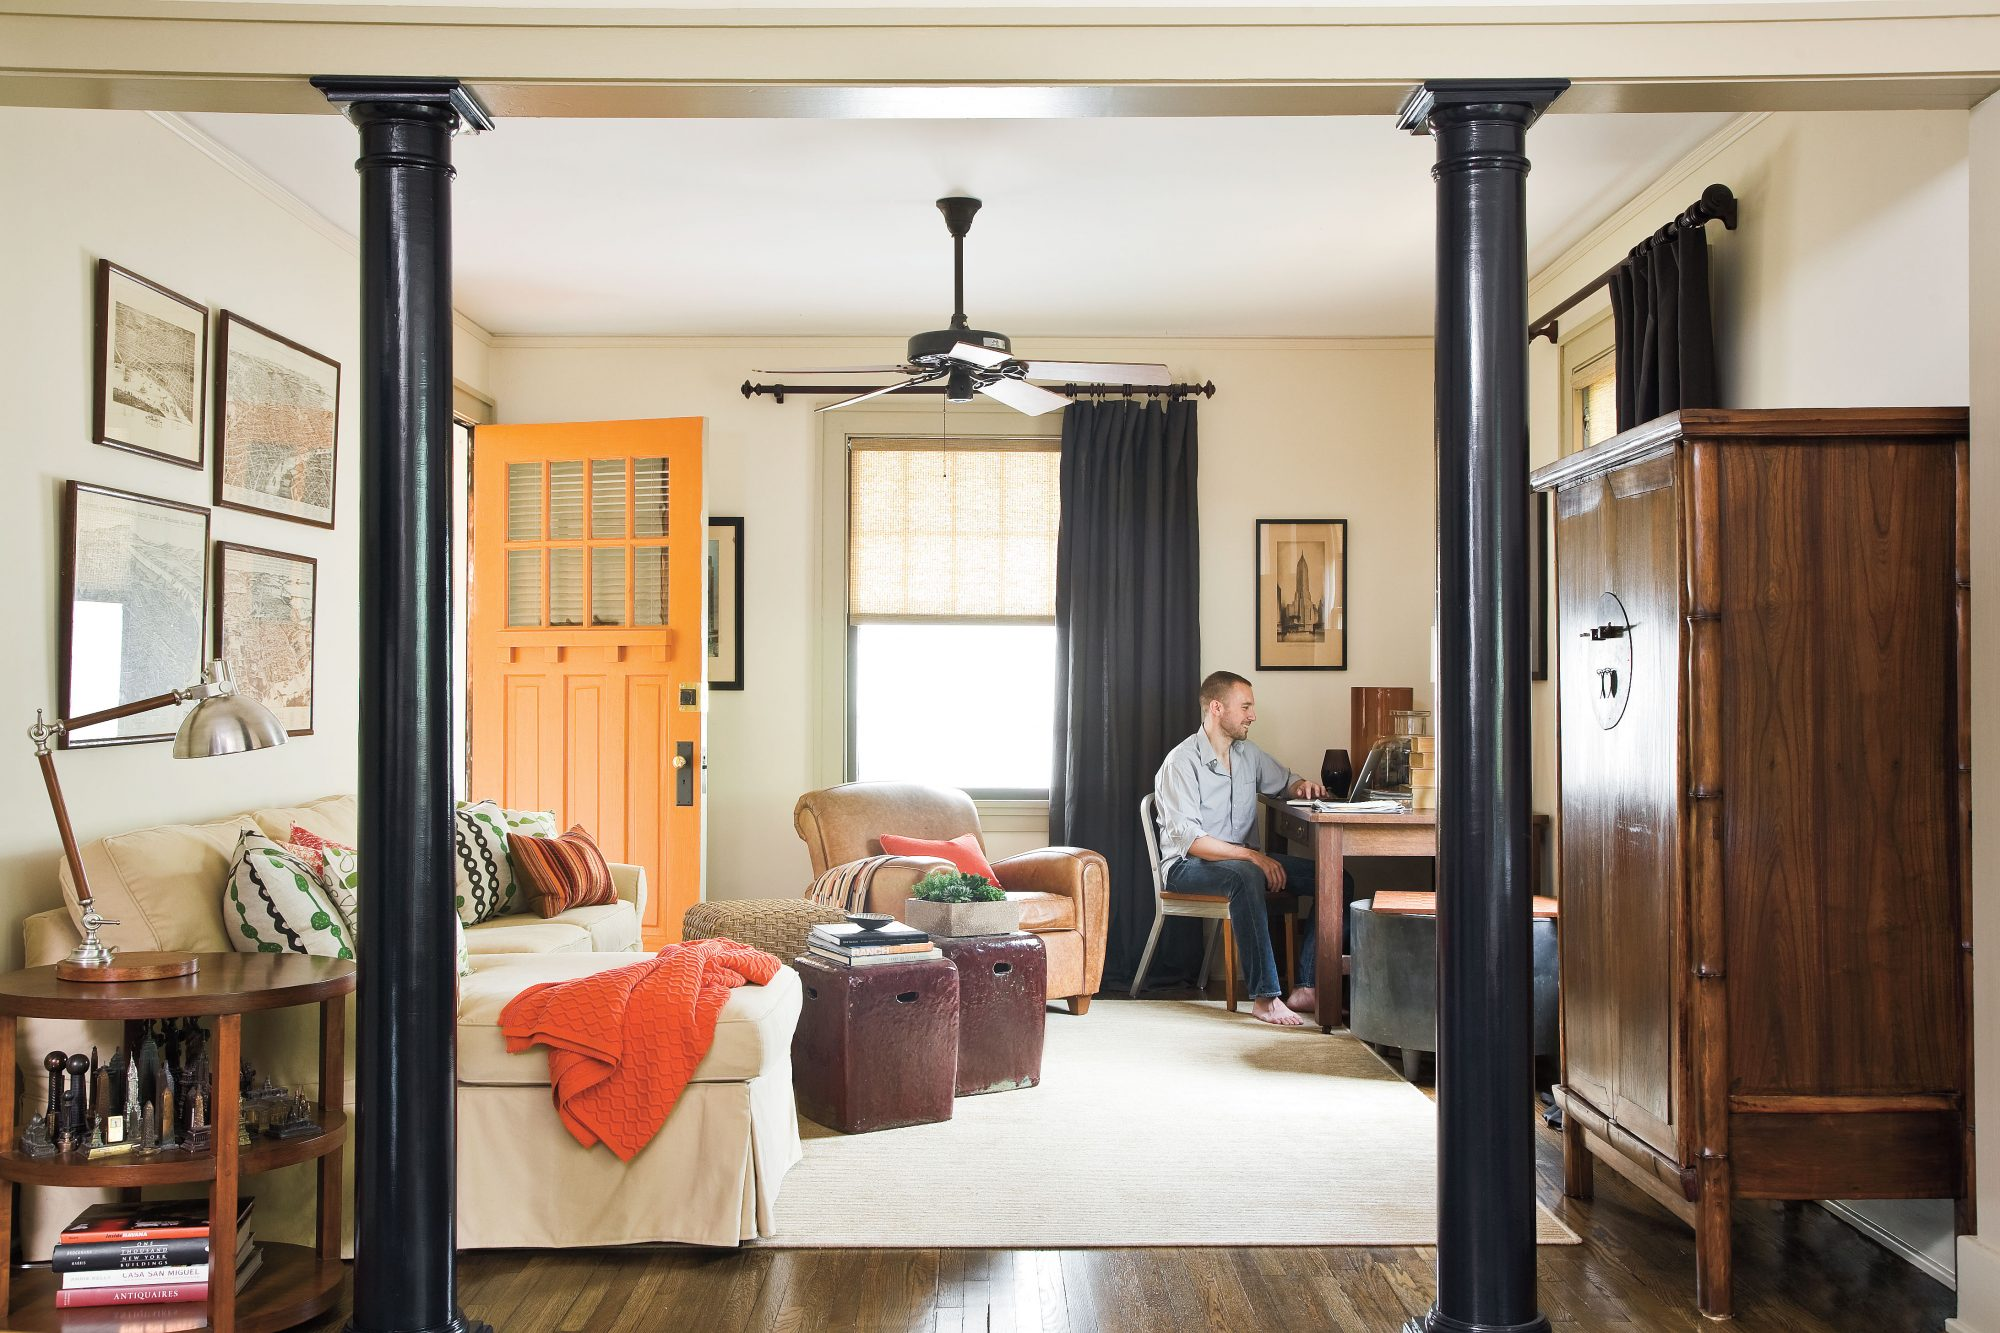 craftsman style home decorating ideas - Styles Of Decor